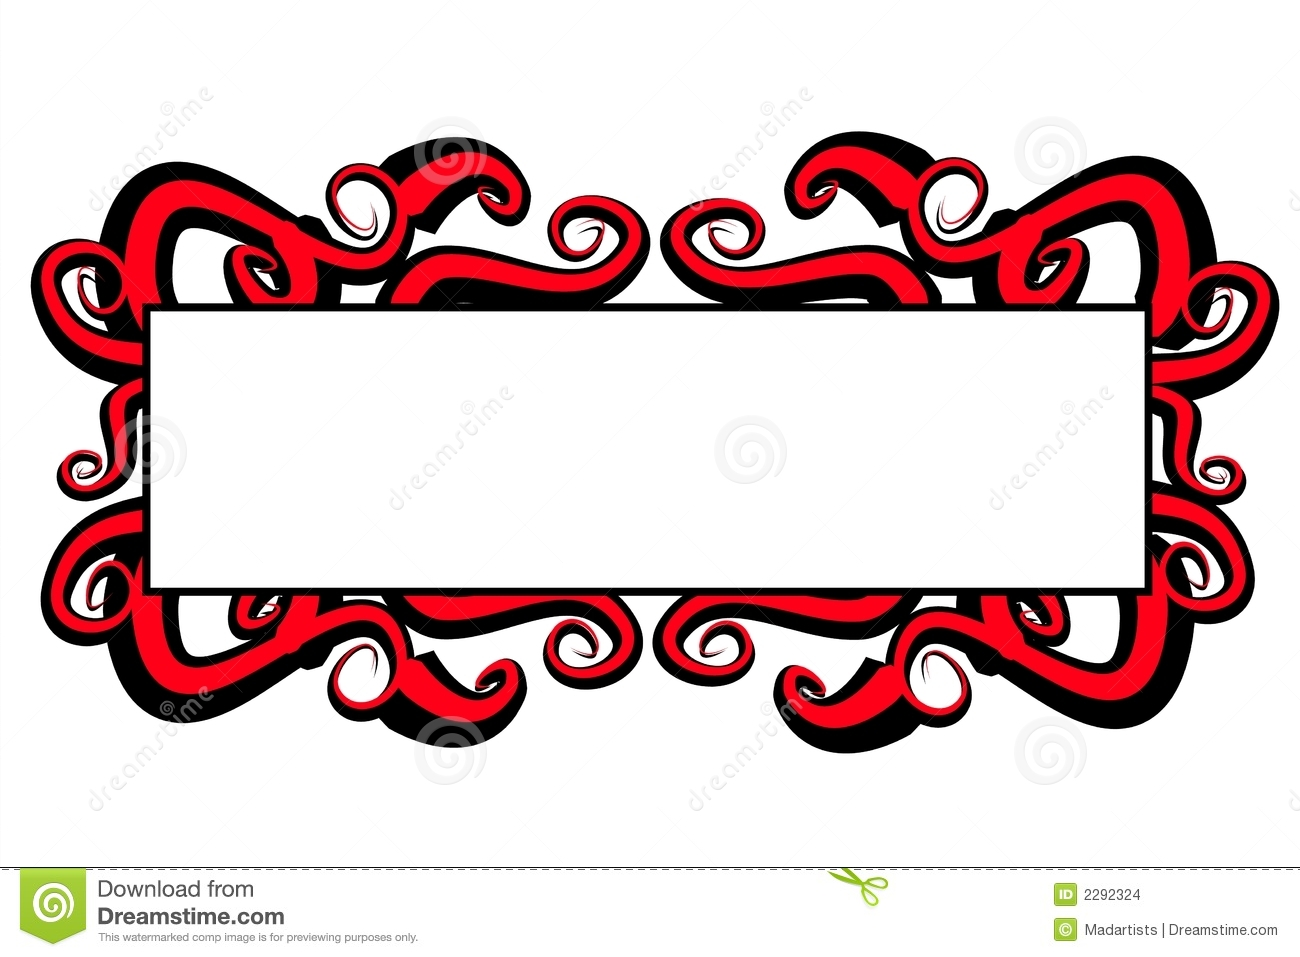 black and white decorative swirls logo stock illustration rh dreamstime com red and black bmw logos red black and gold logos